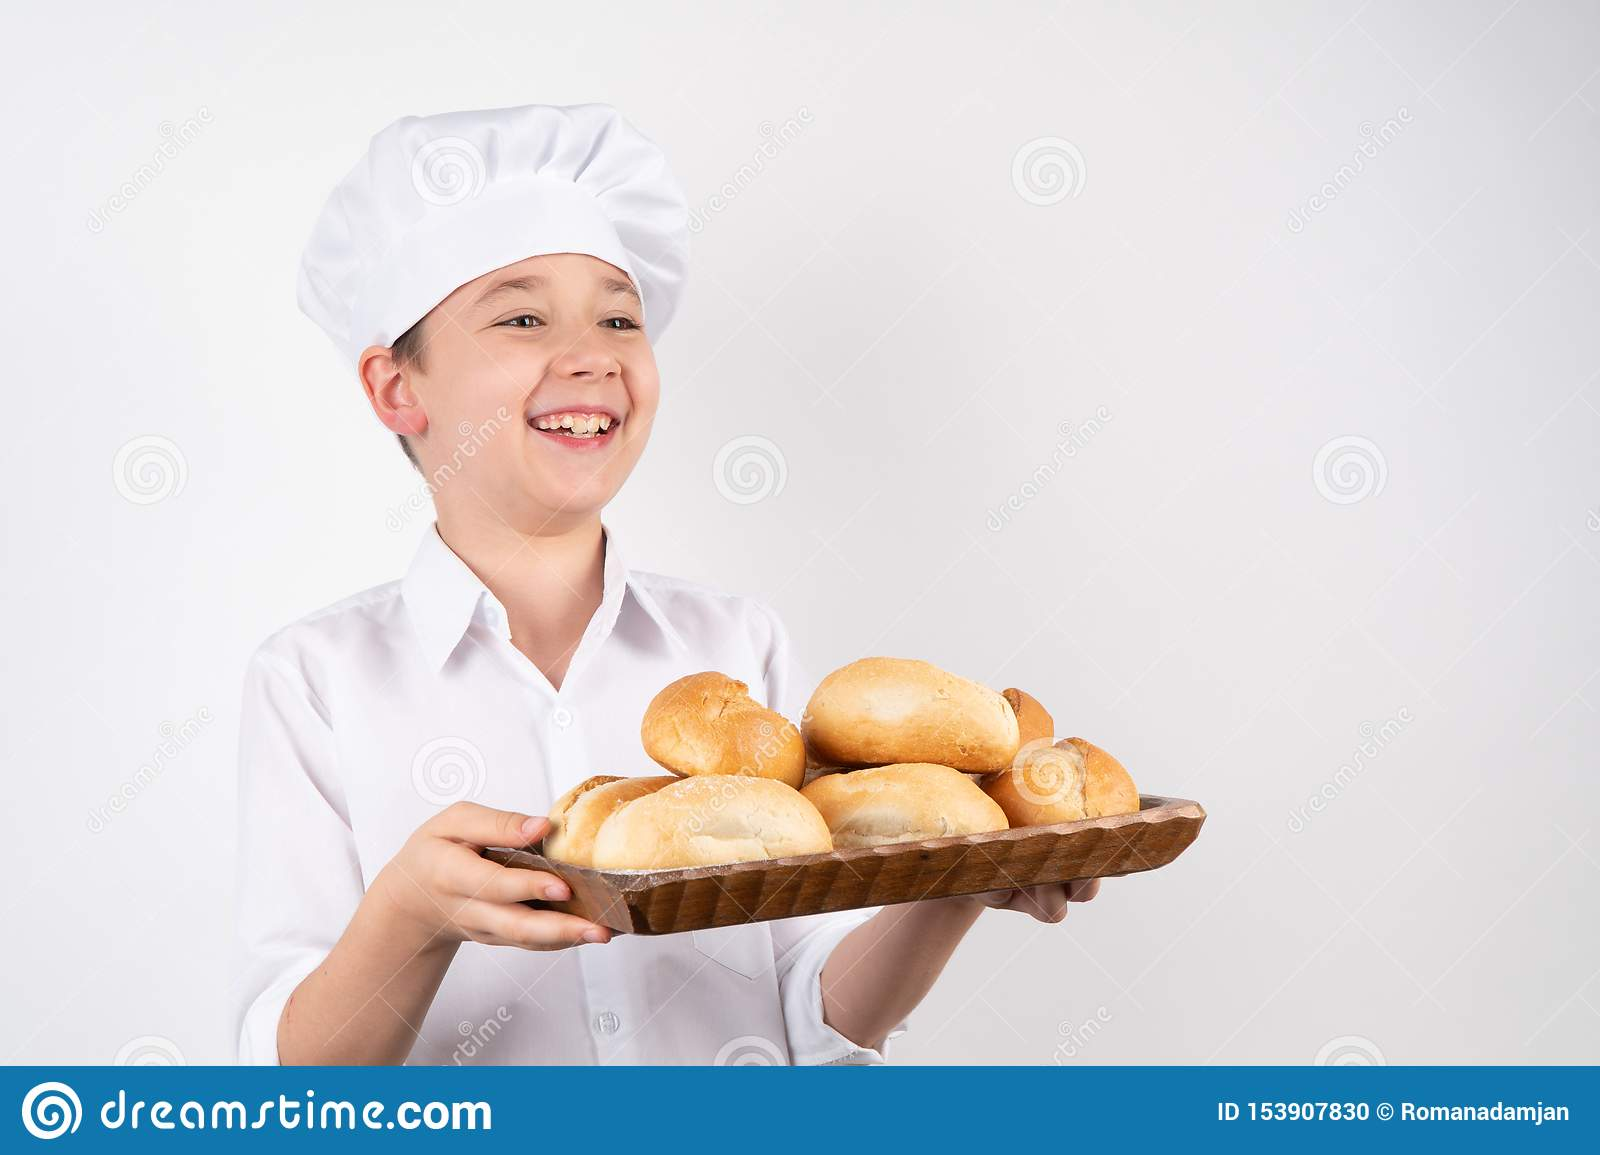 Cook Boy With Bread on white background, laughs